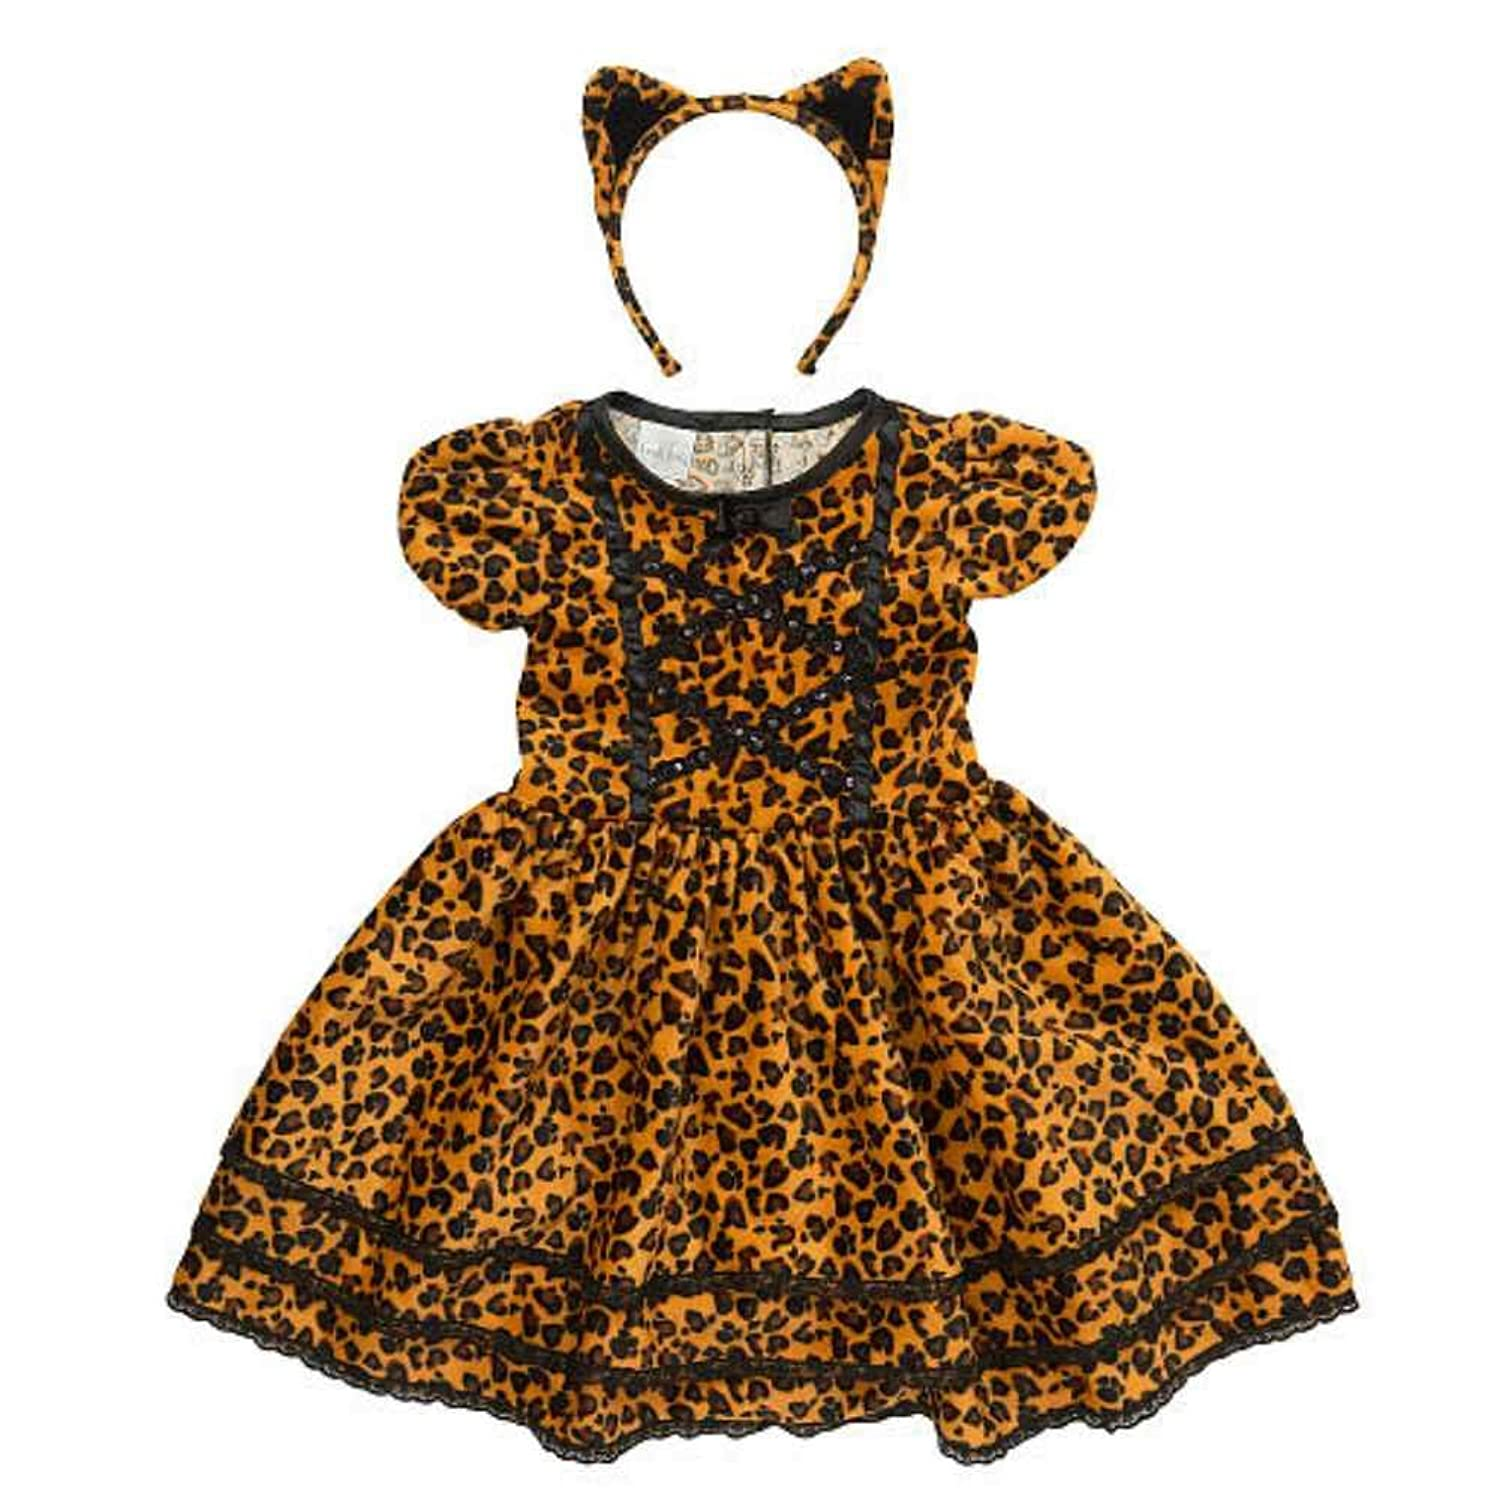 Amazon Koala Kids Toddler Girls Cat Costume Leopard Print Dress